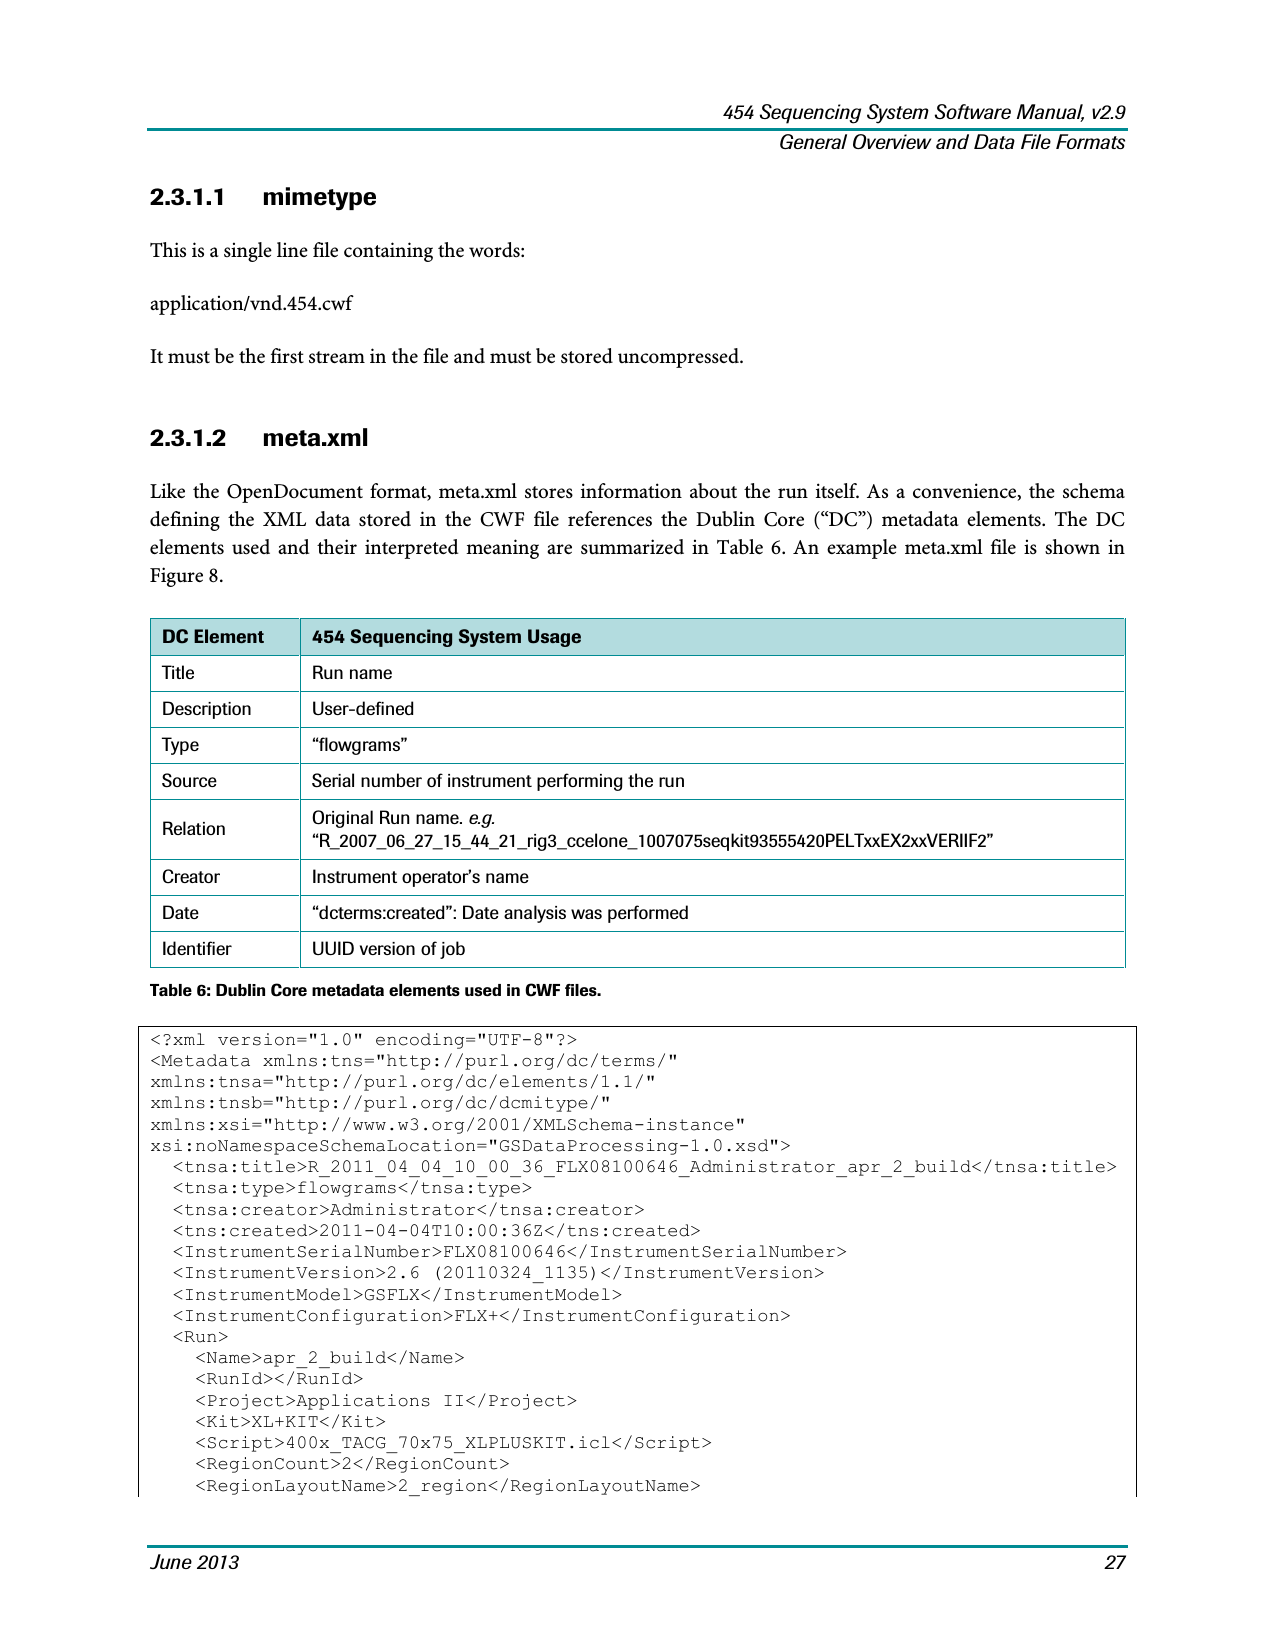 USM-00058.09_454SeqSys_SWManual-v2.9_Overview-27.png